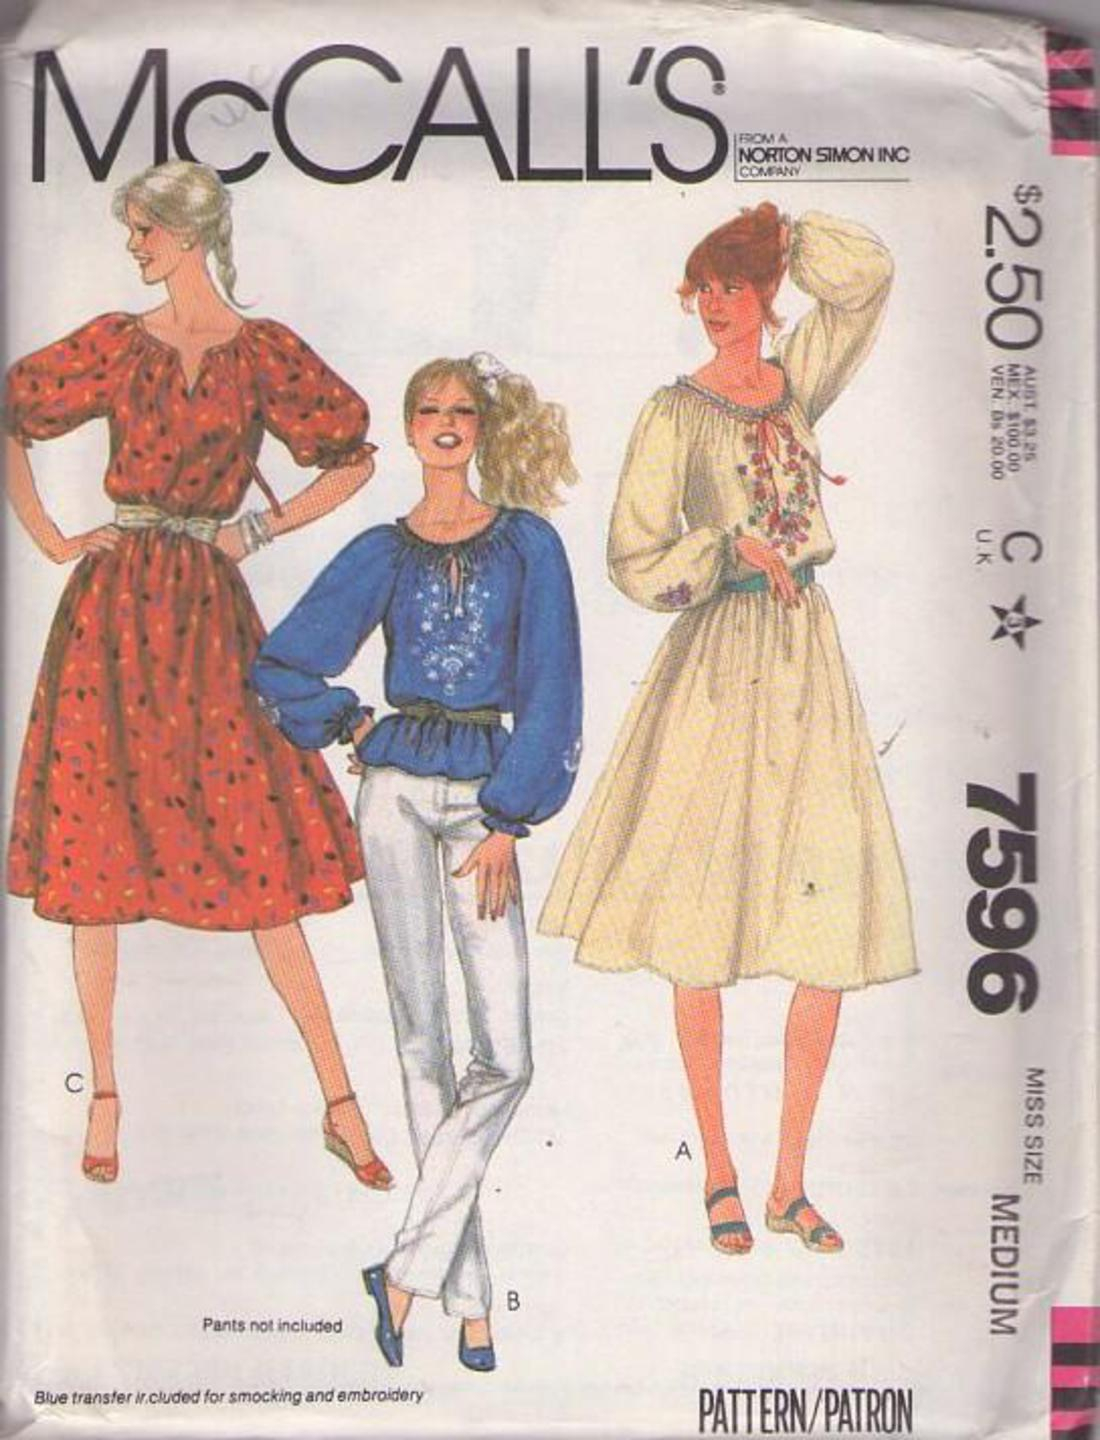 Bohemian Embroidery Patterns Mccalls 7596 Vintage 80s Sewing Pattern Just Lovely Bohemian Ethnic Festival Elastic Scoop Neck Tunic Top Blouse Or Blouson Dress Floral